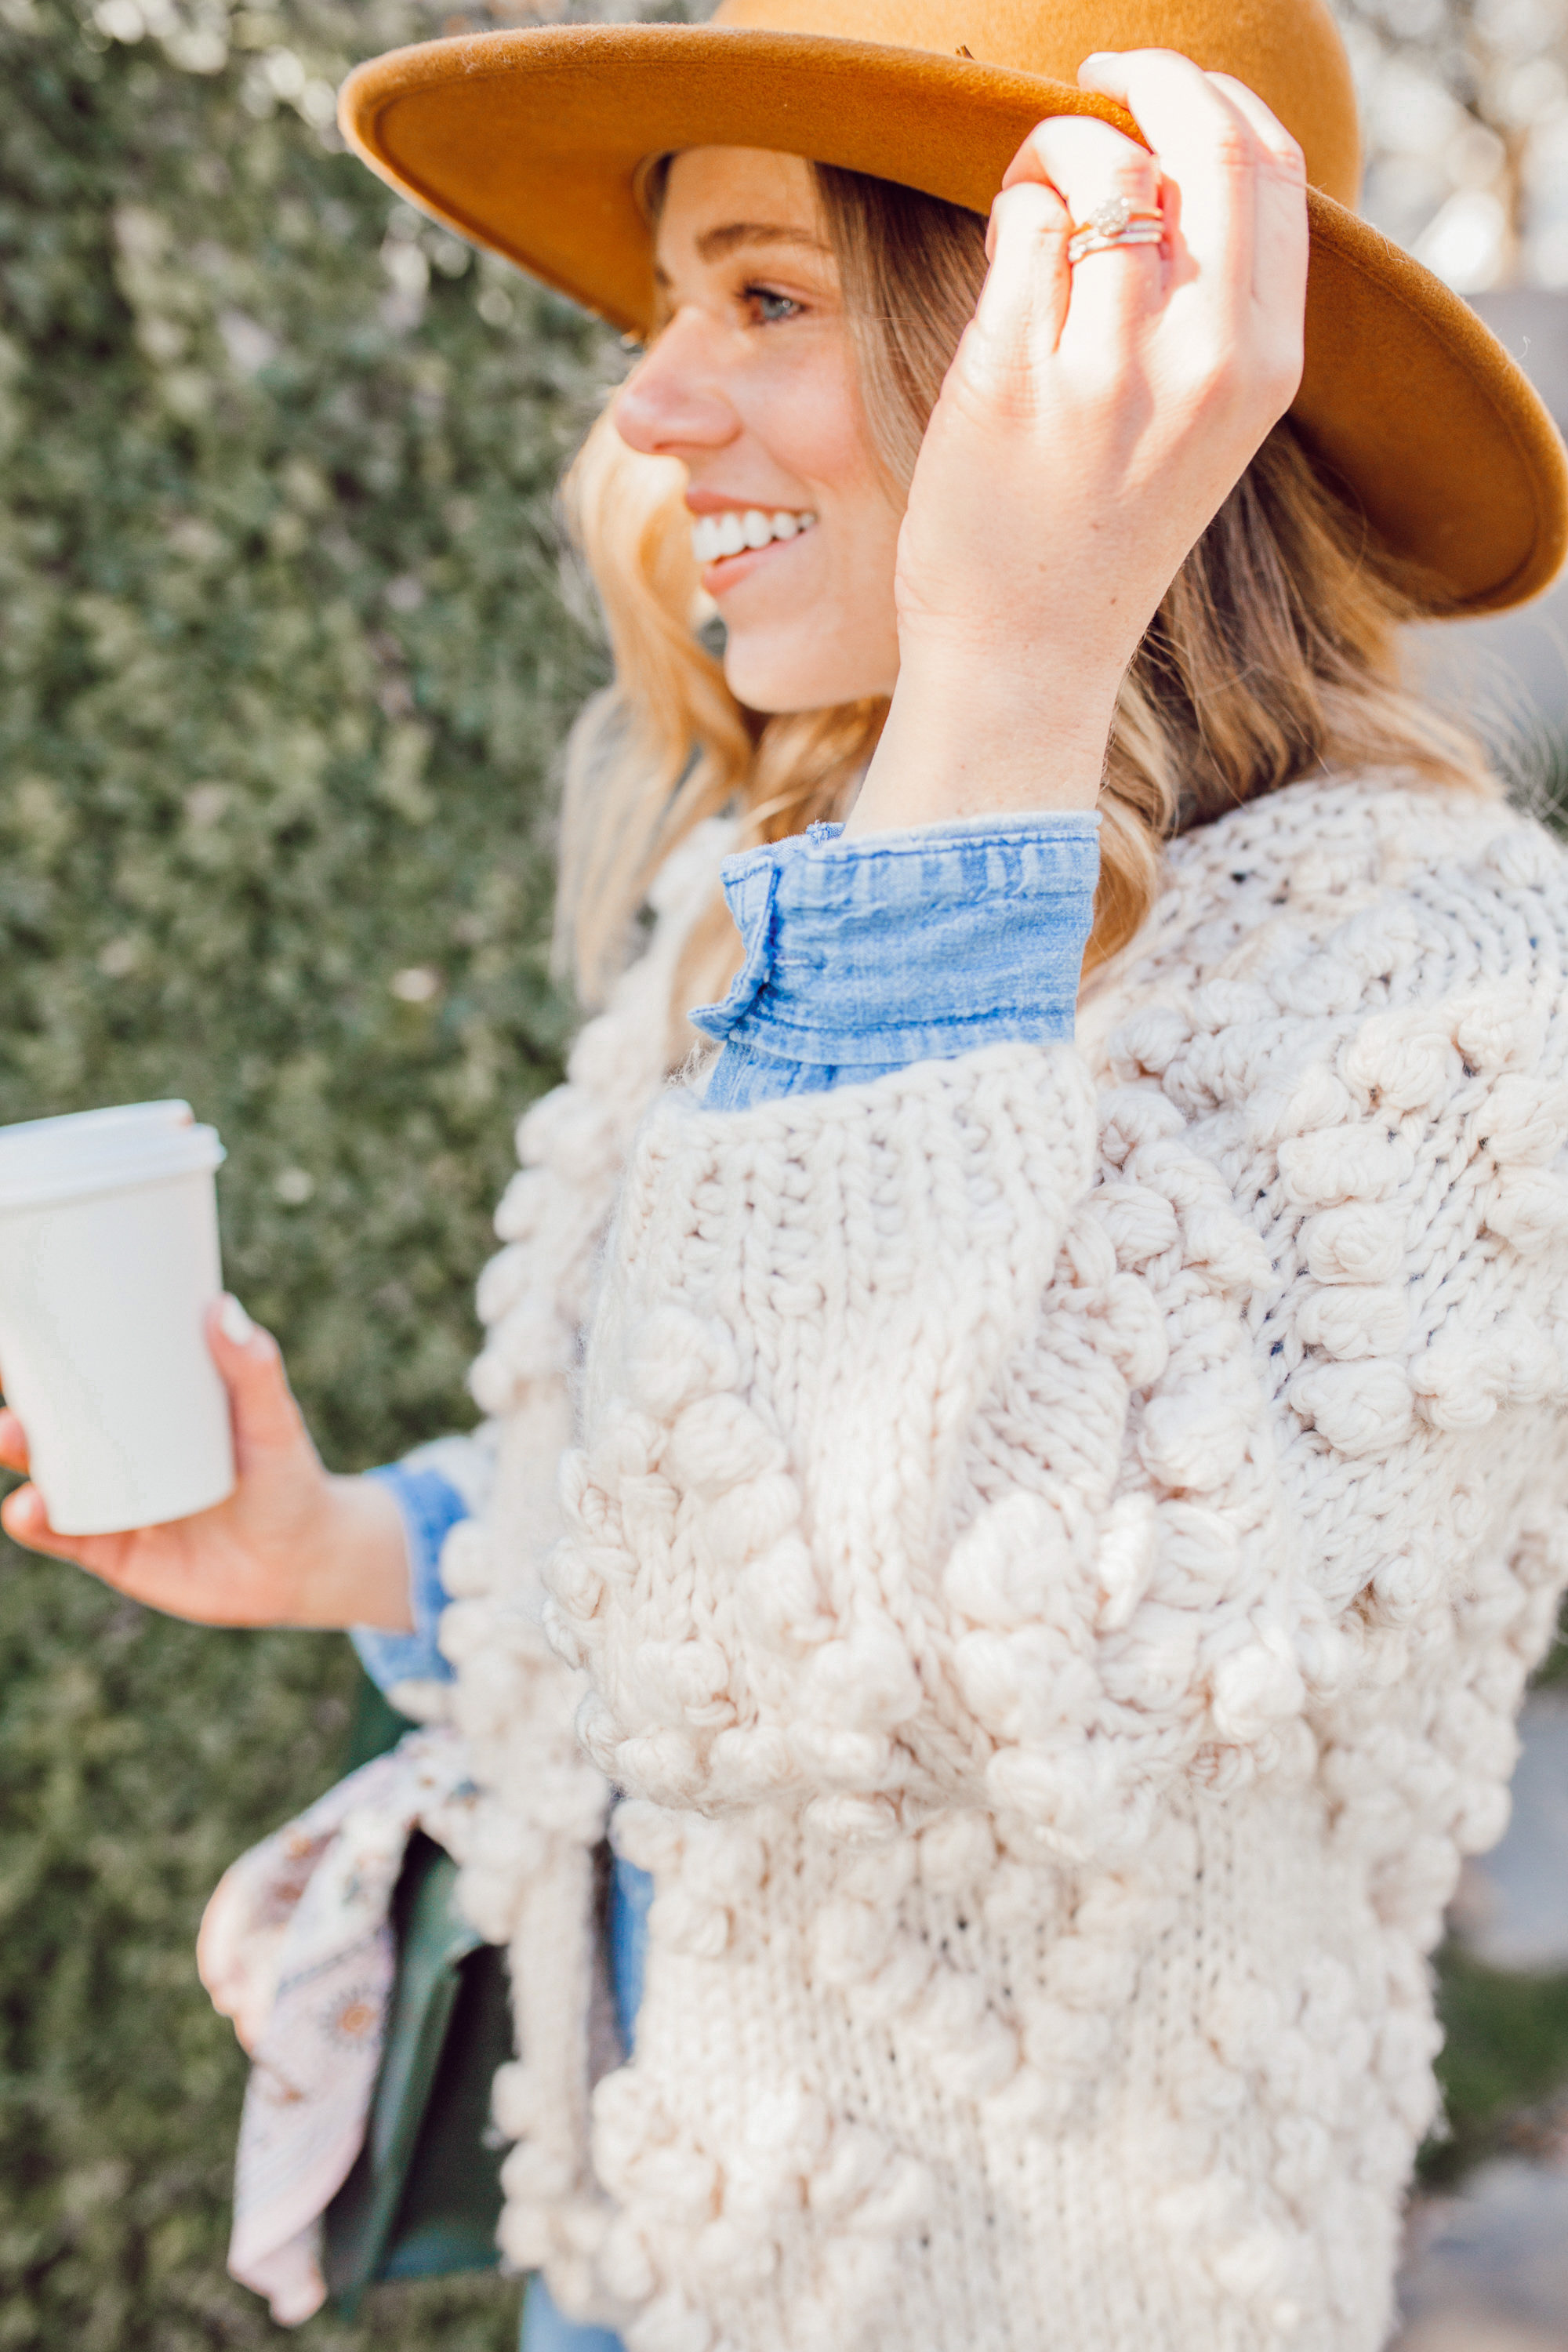 The Importance of Buying Pieces You LOVE - Even If Trendy featured on top US life and style blog Louella Reese| Image of a woman wearing Chicwish Knit Your Love Cardigan, Madewell Overalls, Yellow Wool Hat | Heart Pom Cardigan Sweater